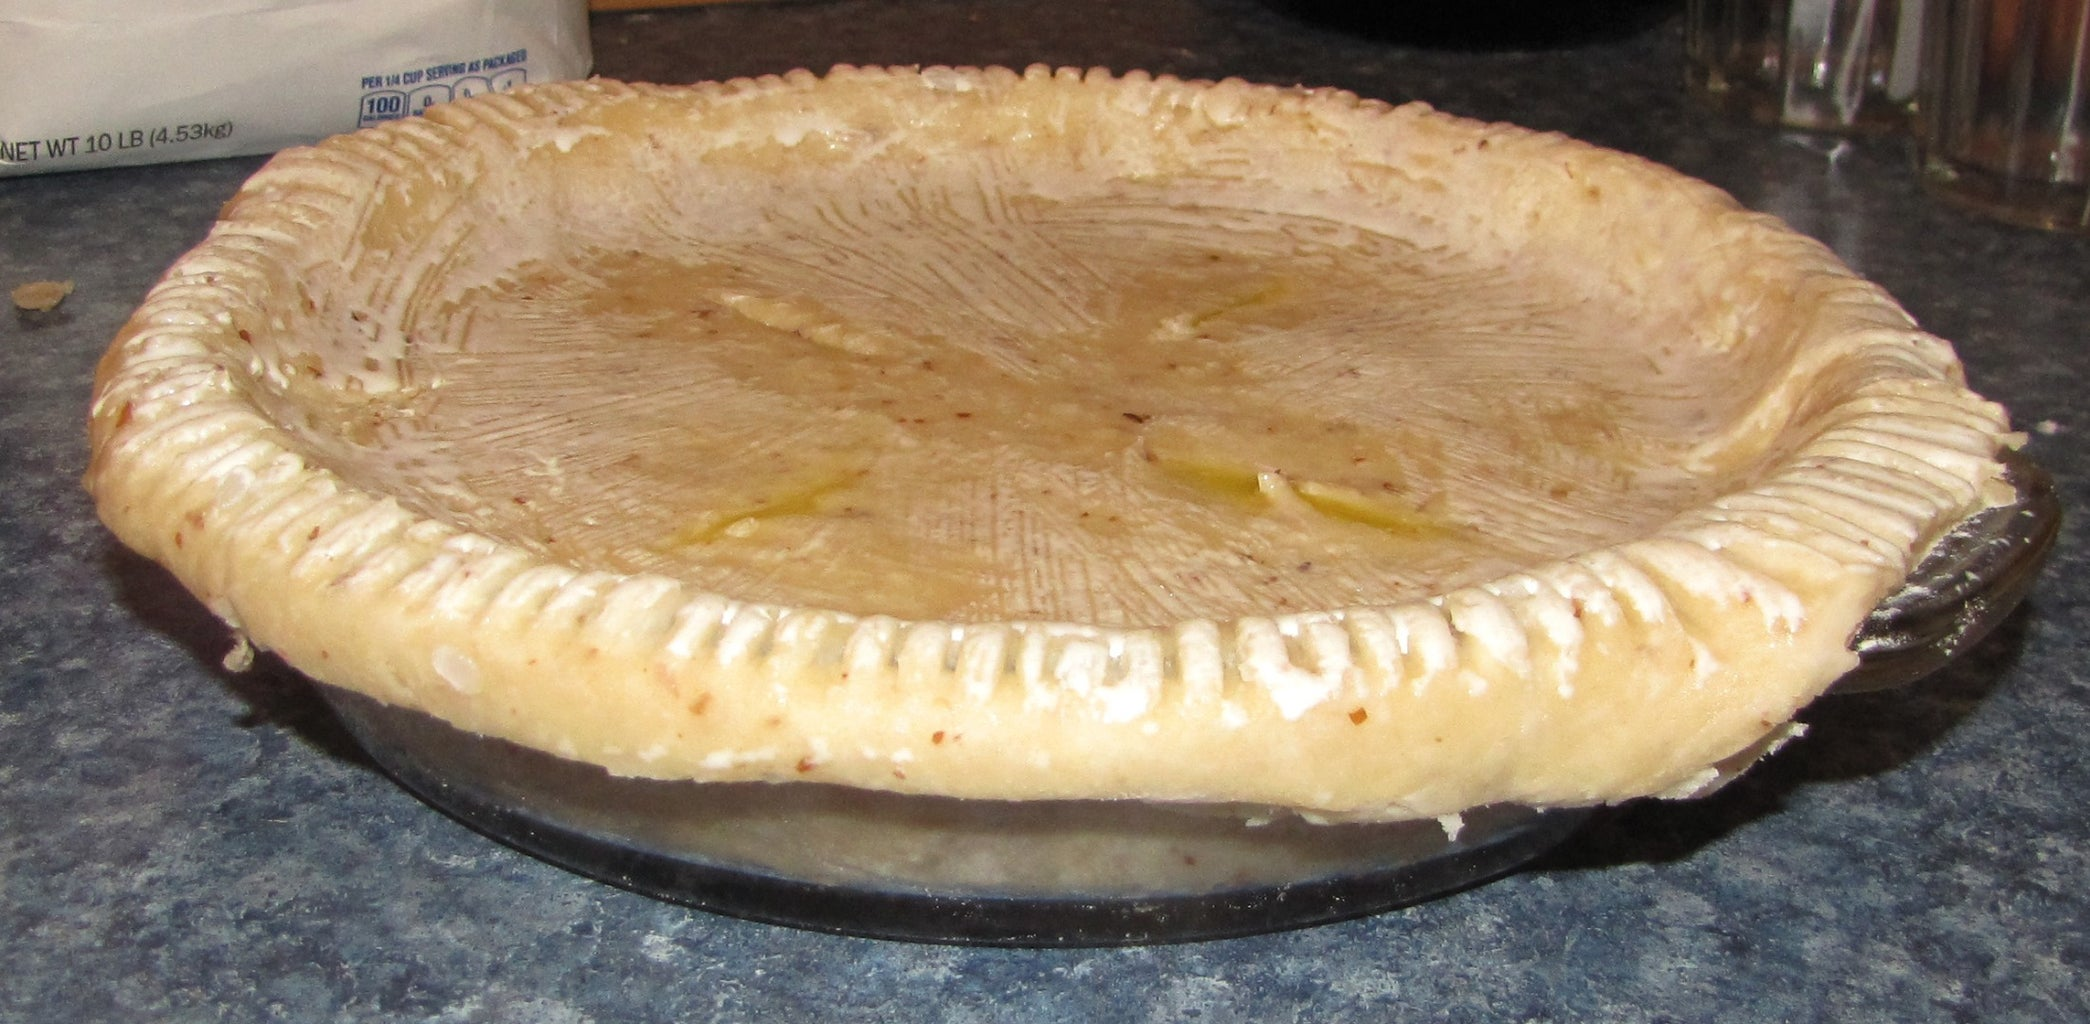 Filling the Pie